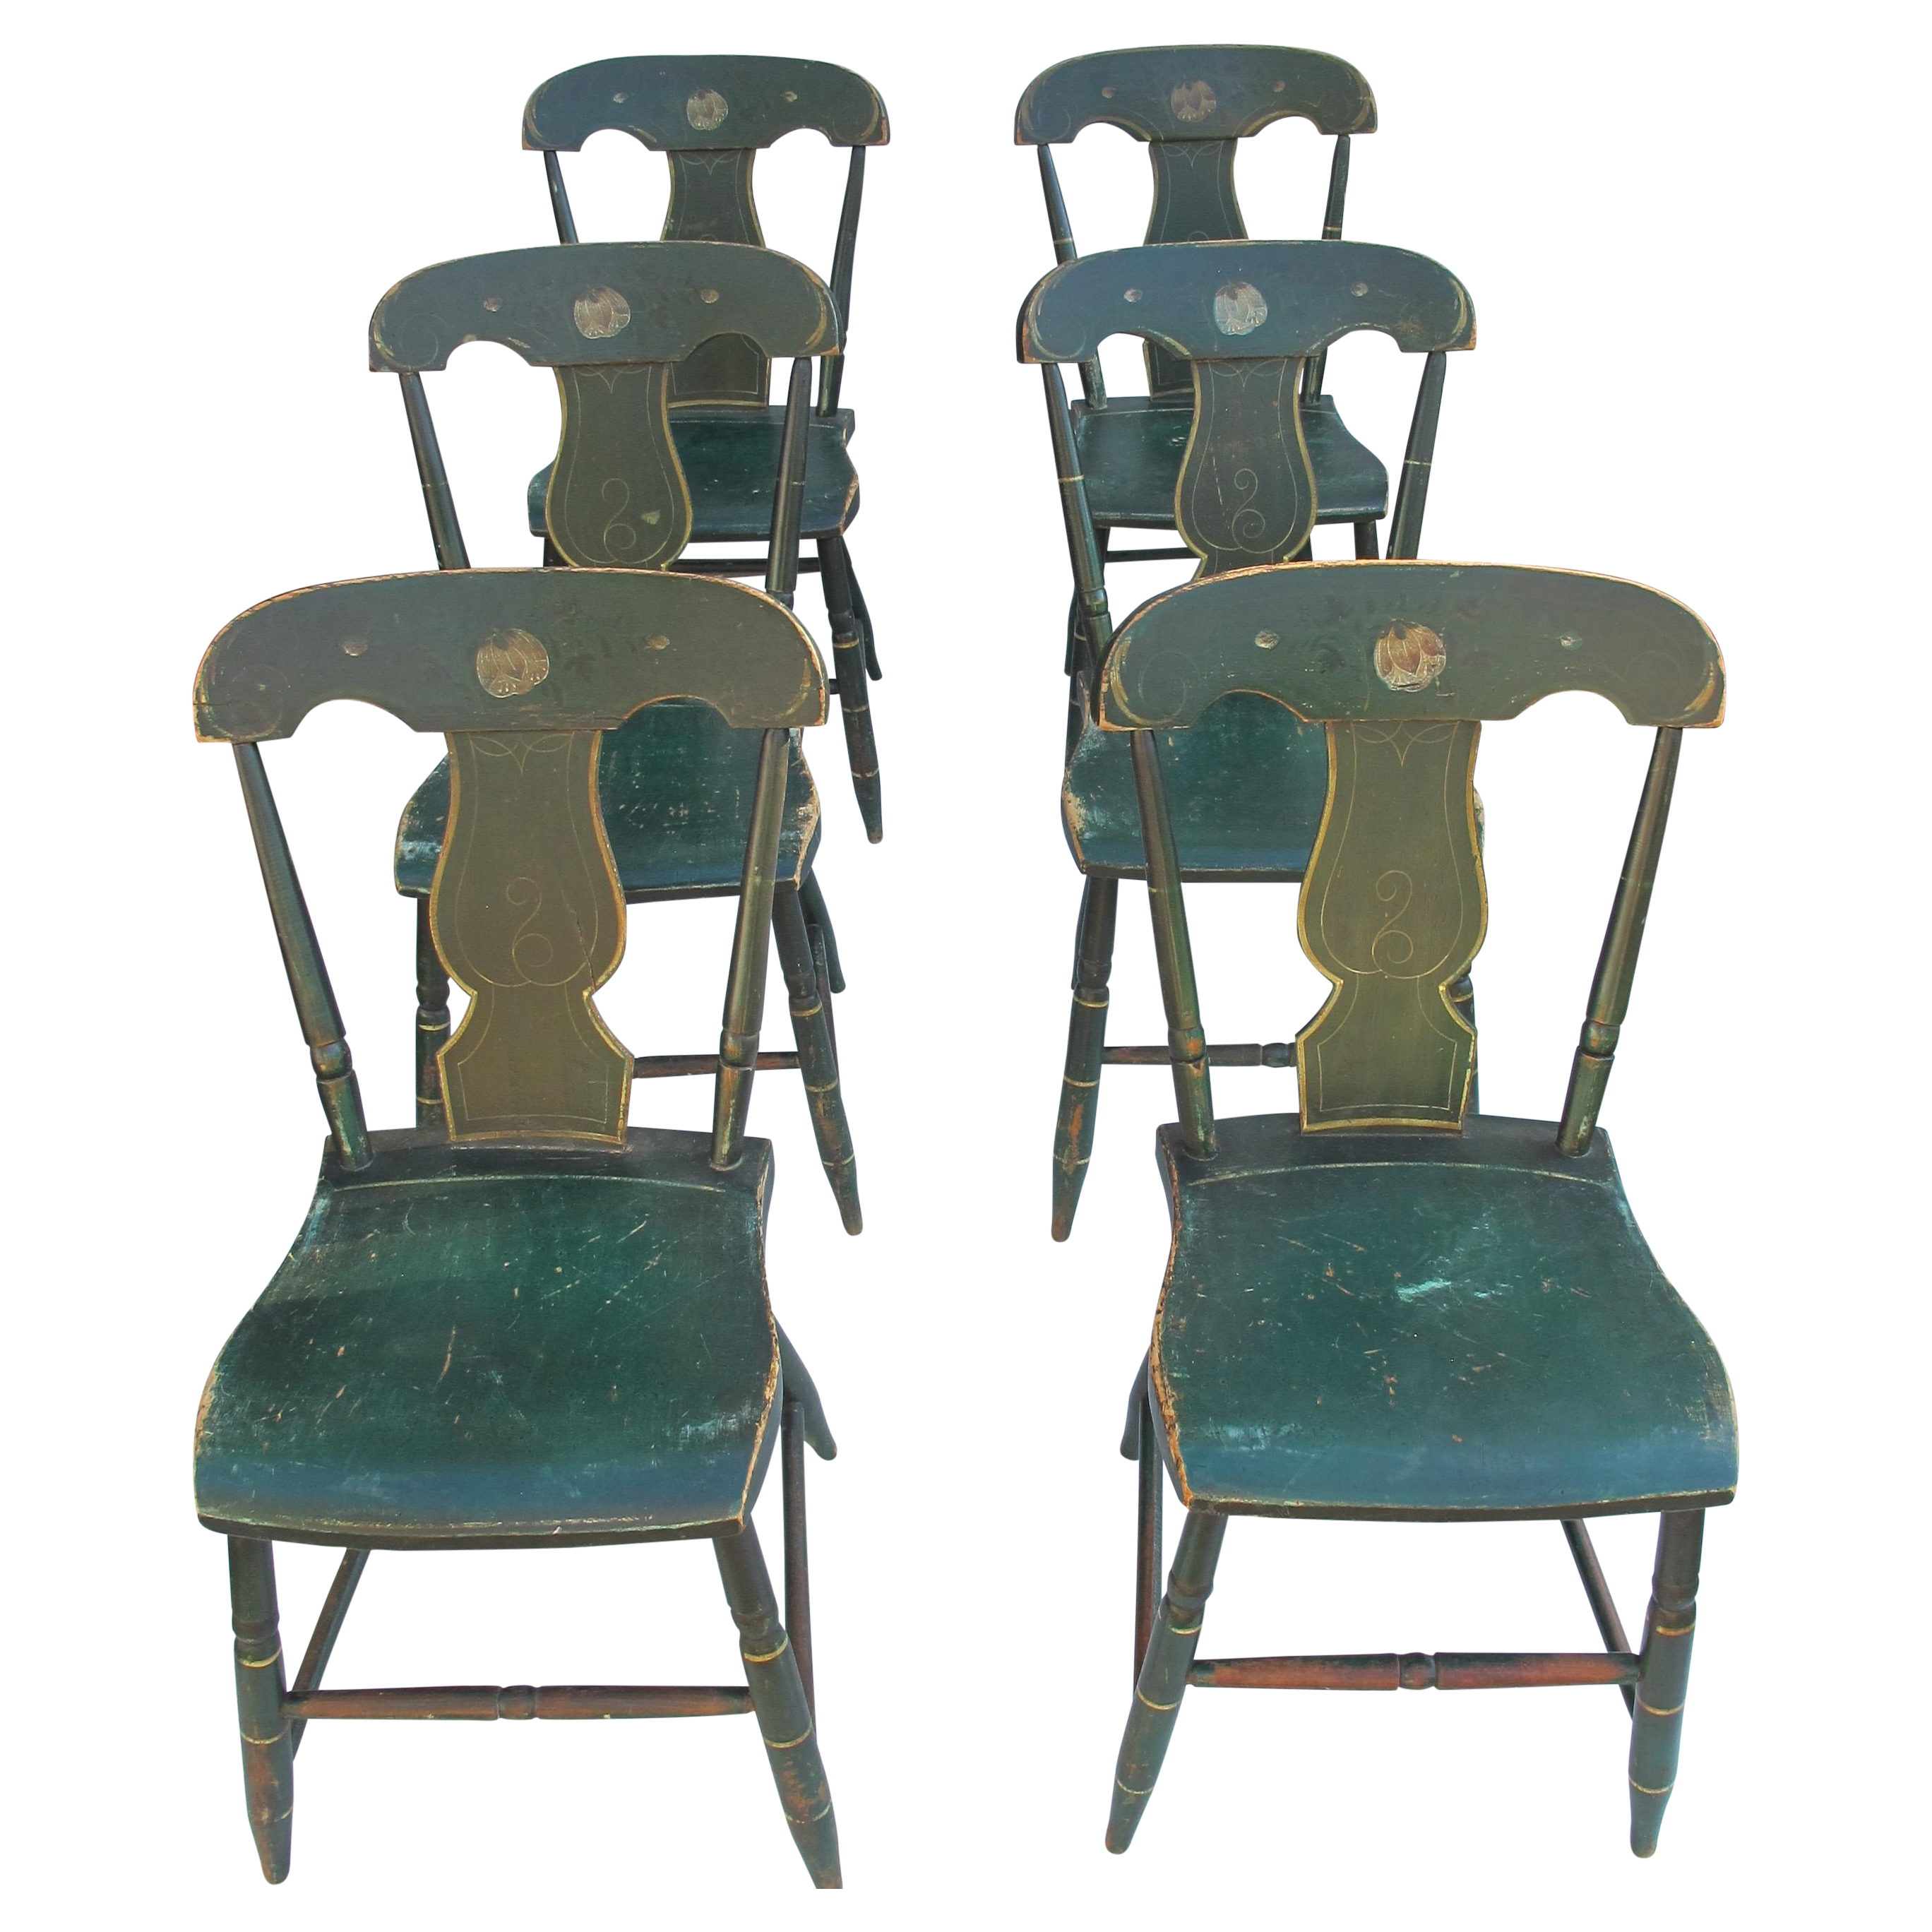 Vintage thonet style cafe chairs with stenciled seats - Antique Painted Pennsylvania Plank Chairs S 6